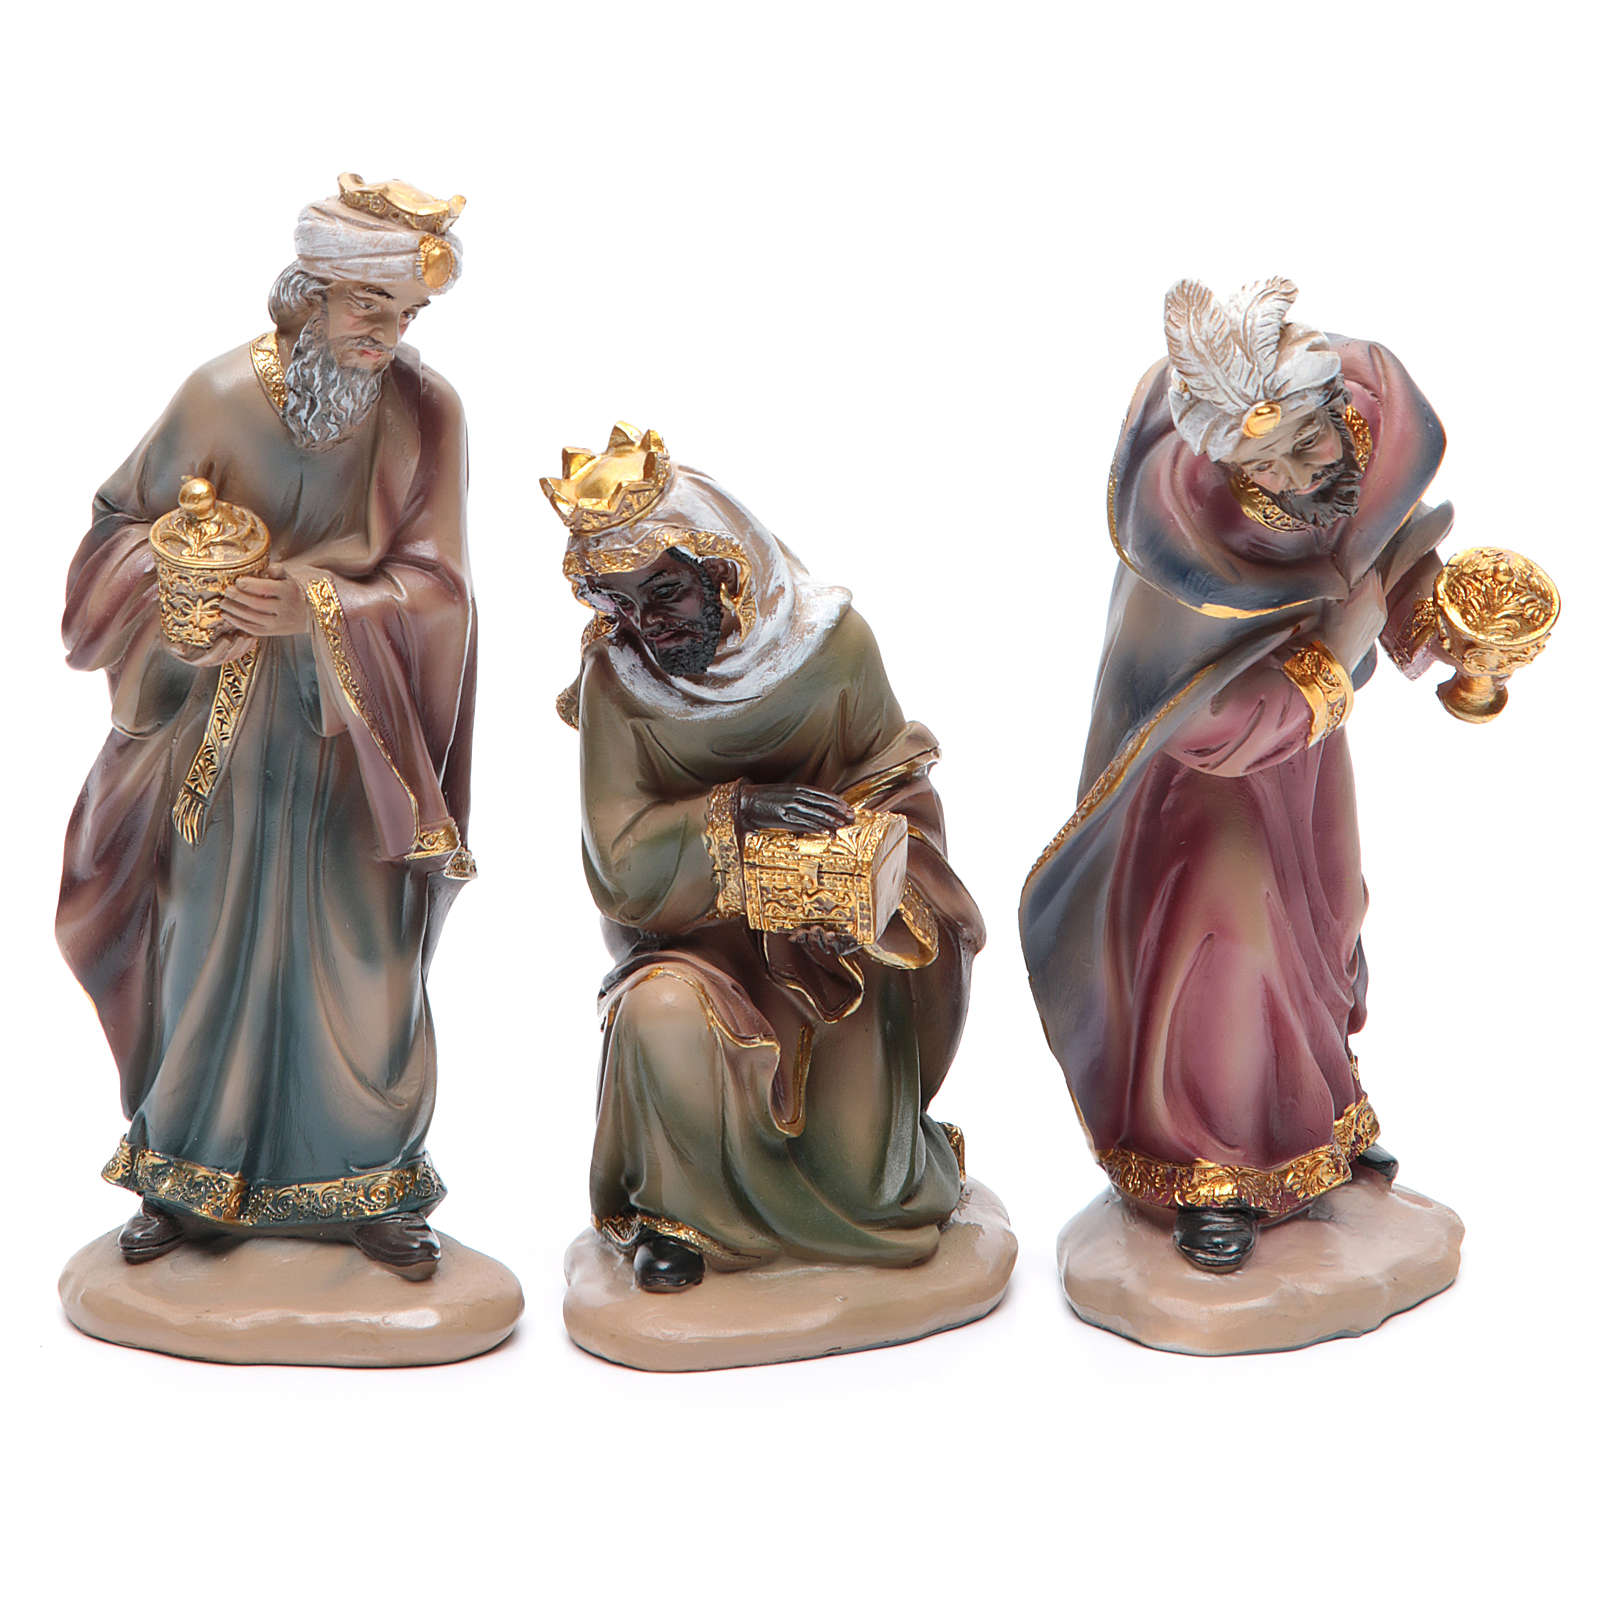 Resin nativity set measuring 20cm, 11 figurines in Classic Style 4